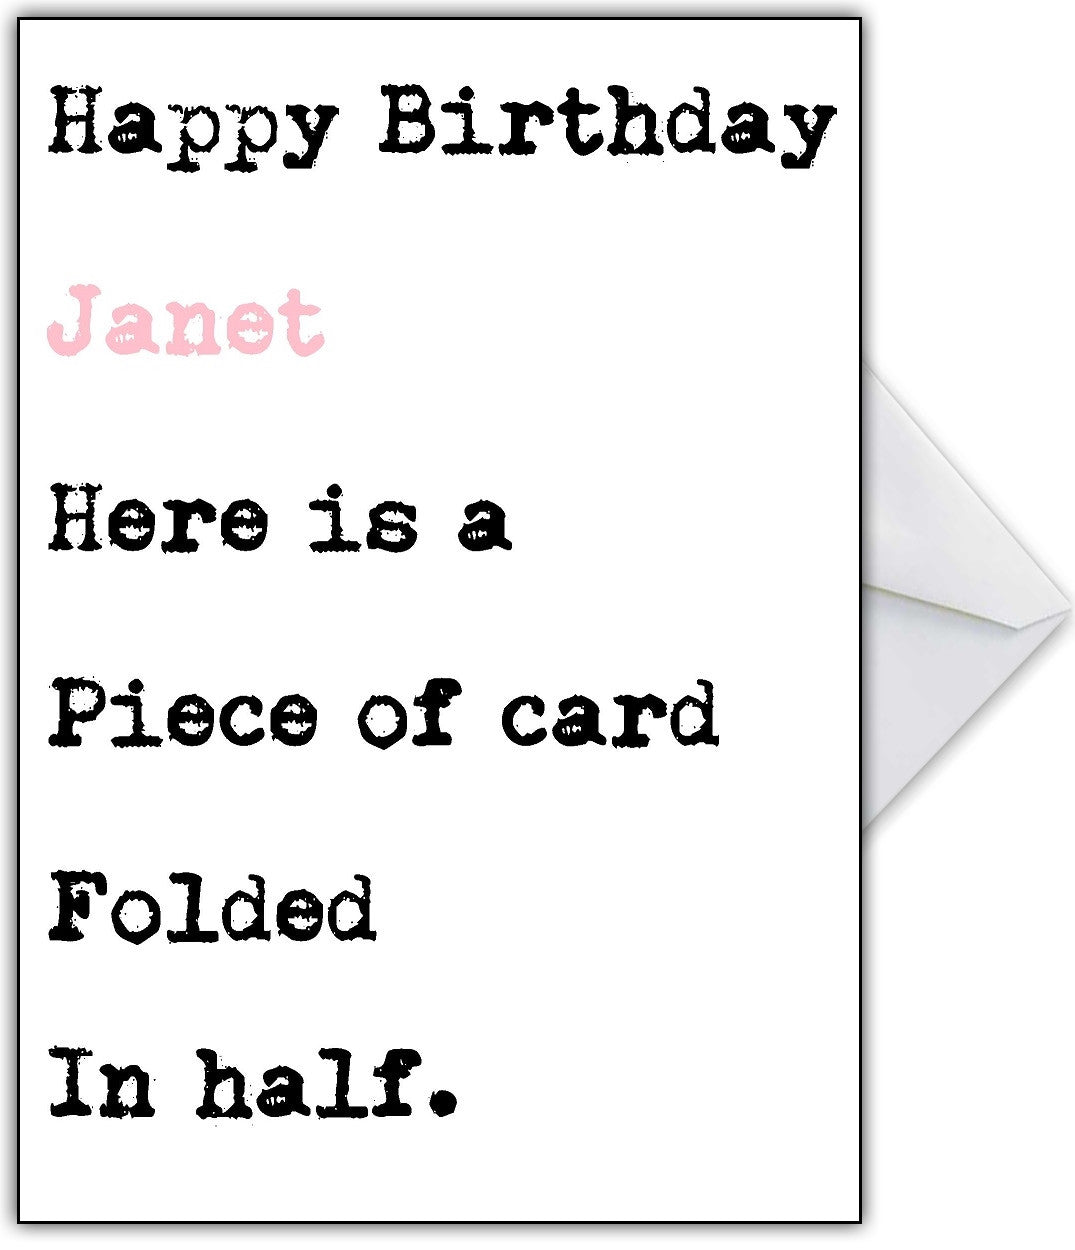 Funny Birthday Card For Her It Is Just A Piece Of